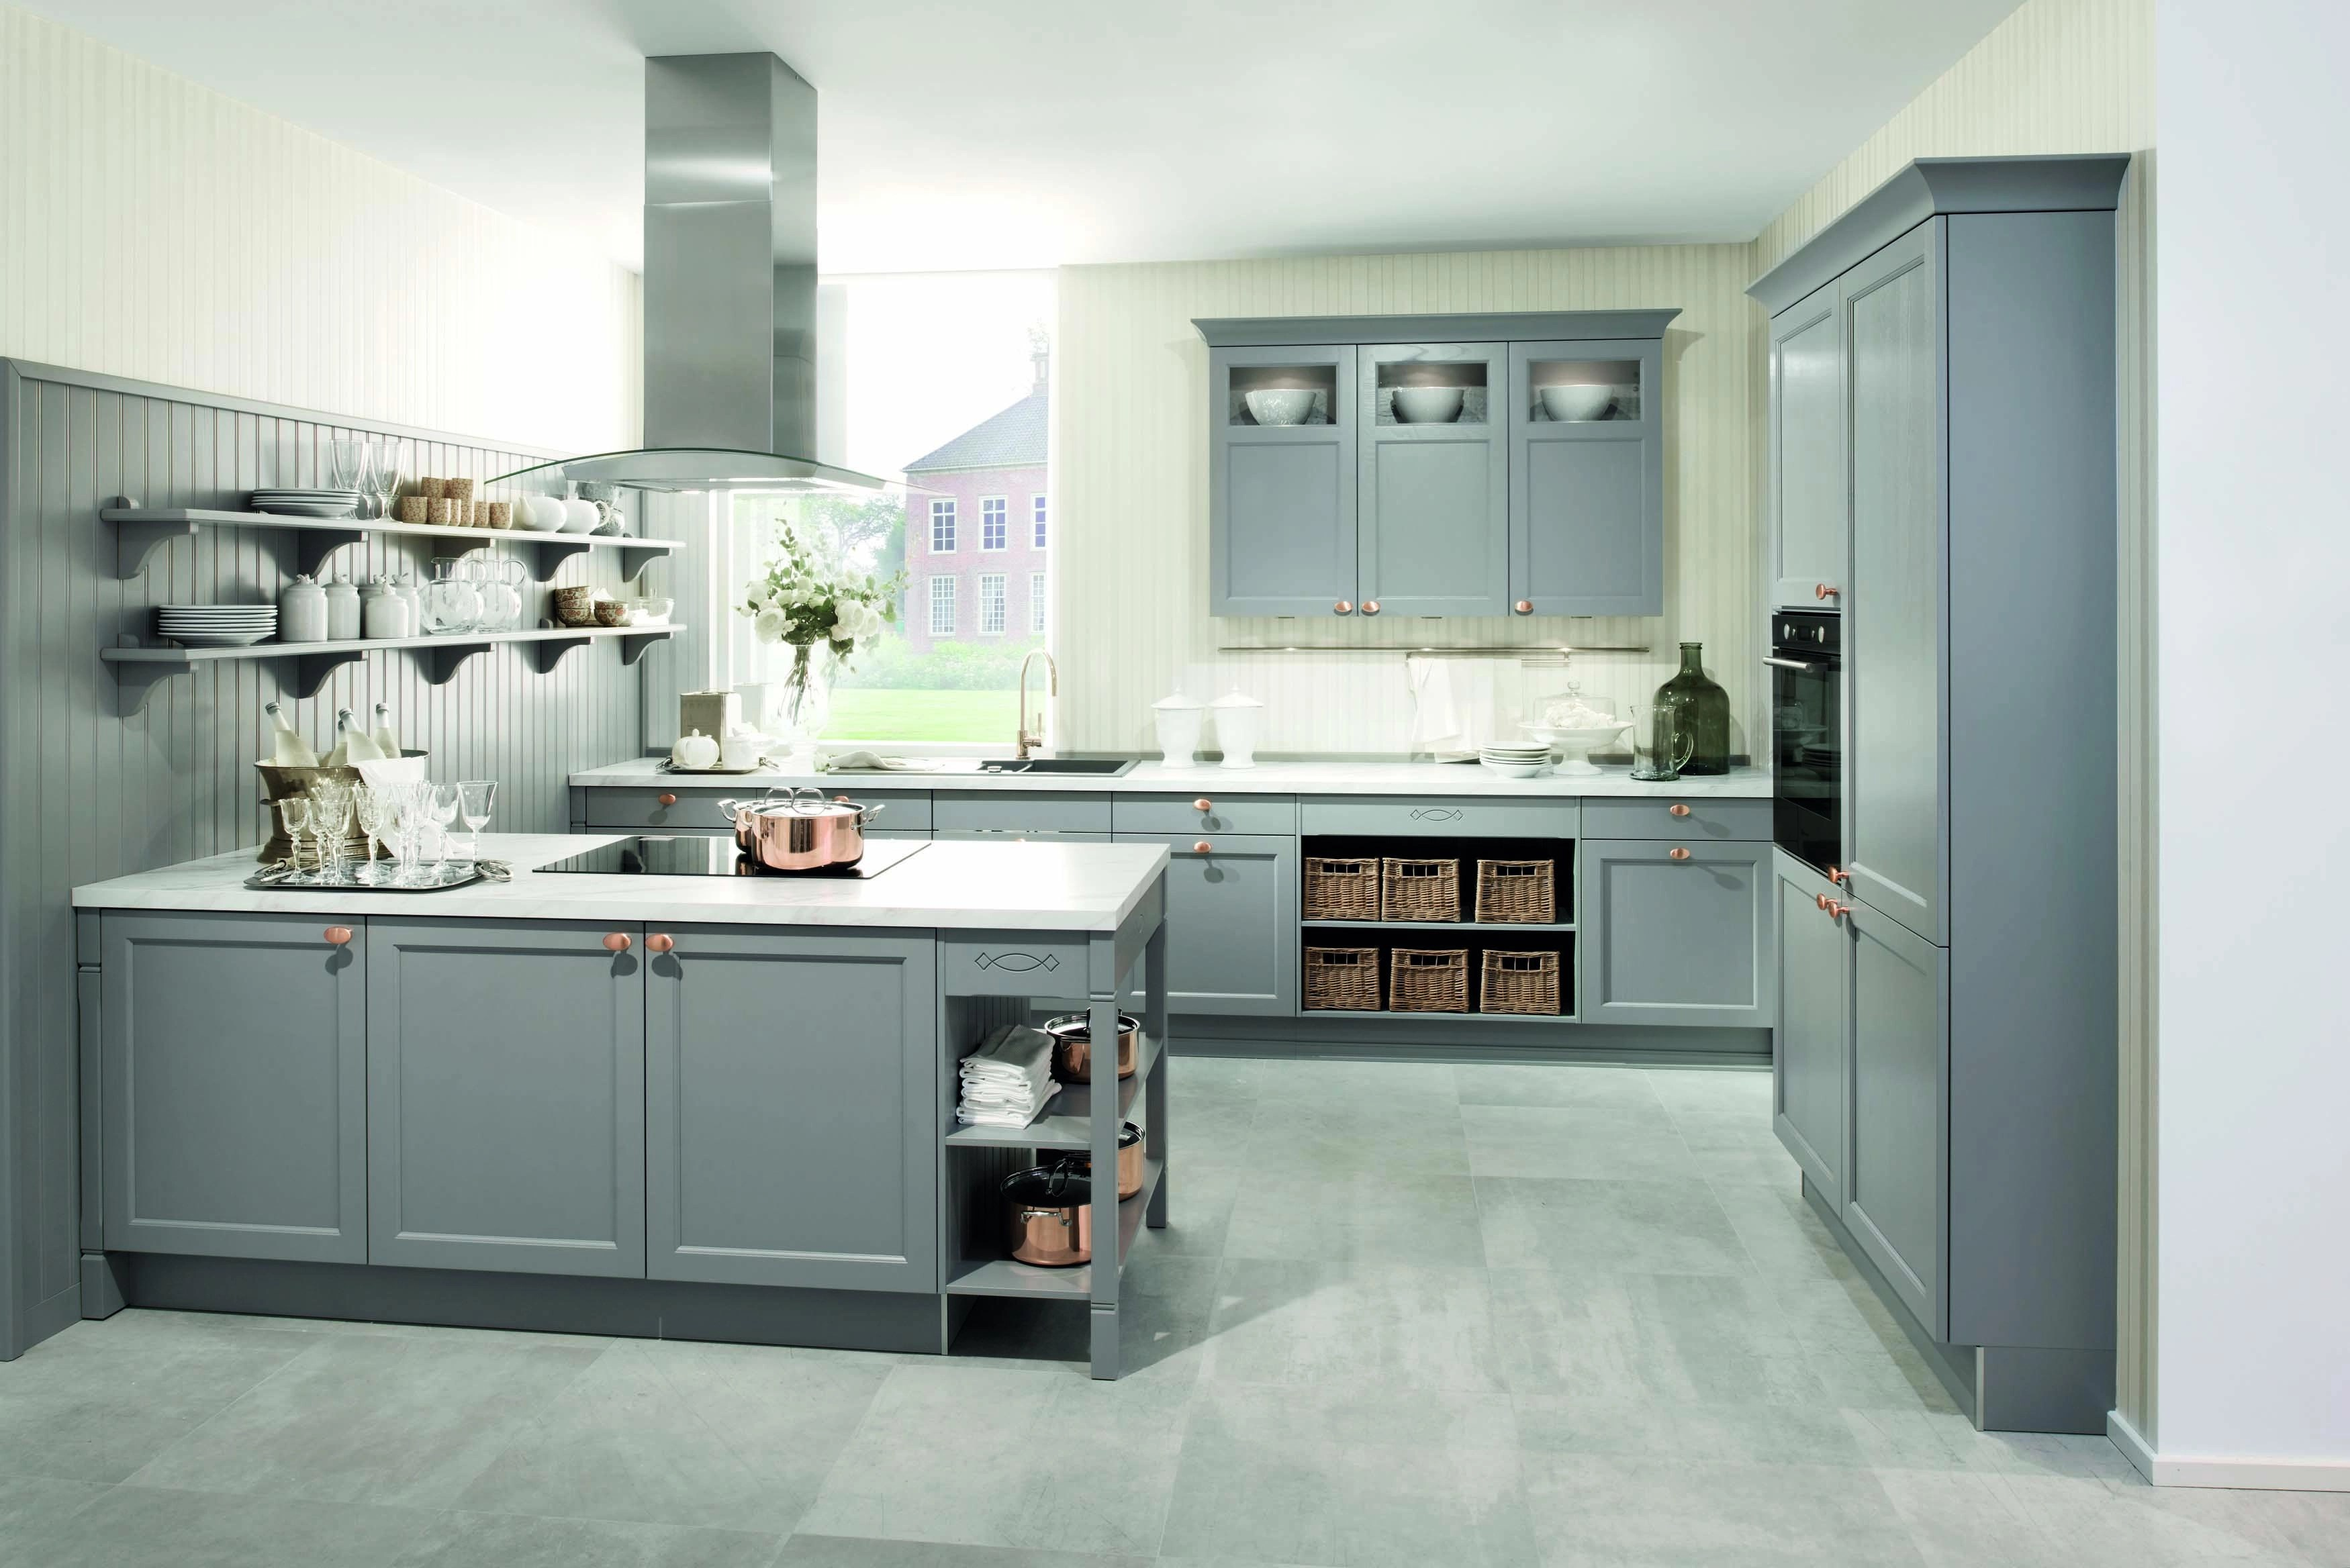 Ikea Küche Taubenblau Kitchens Modern Tradditional And Shaker Kitchens By